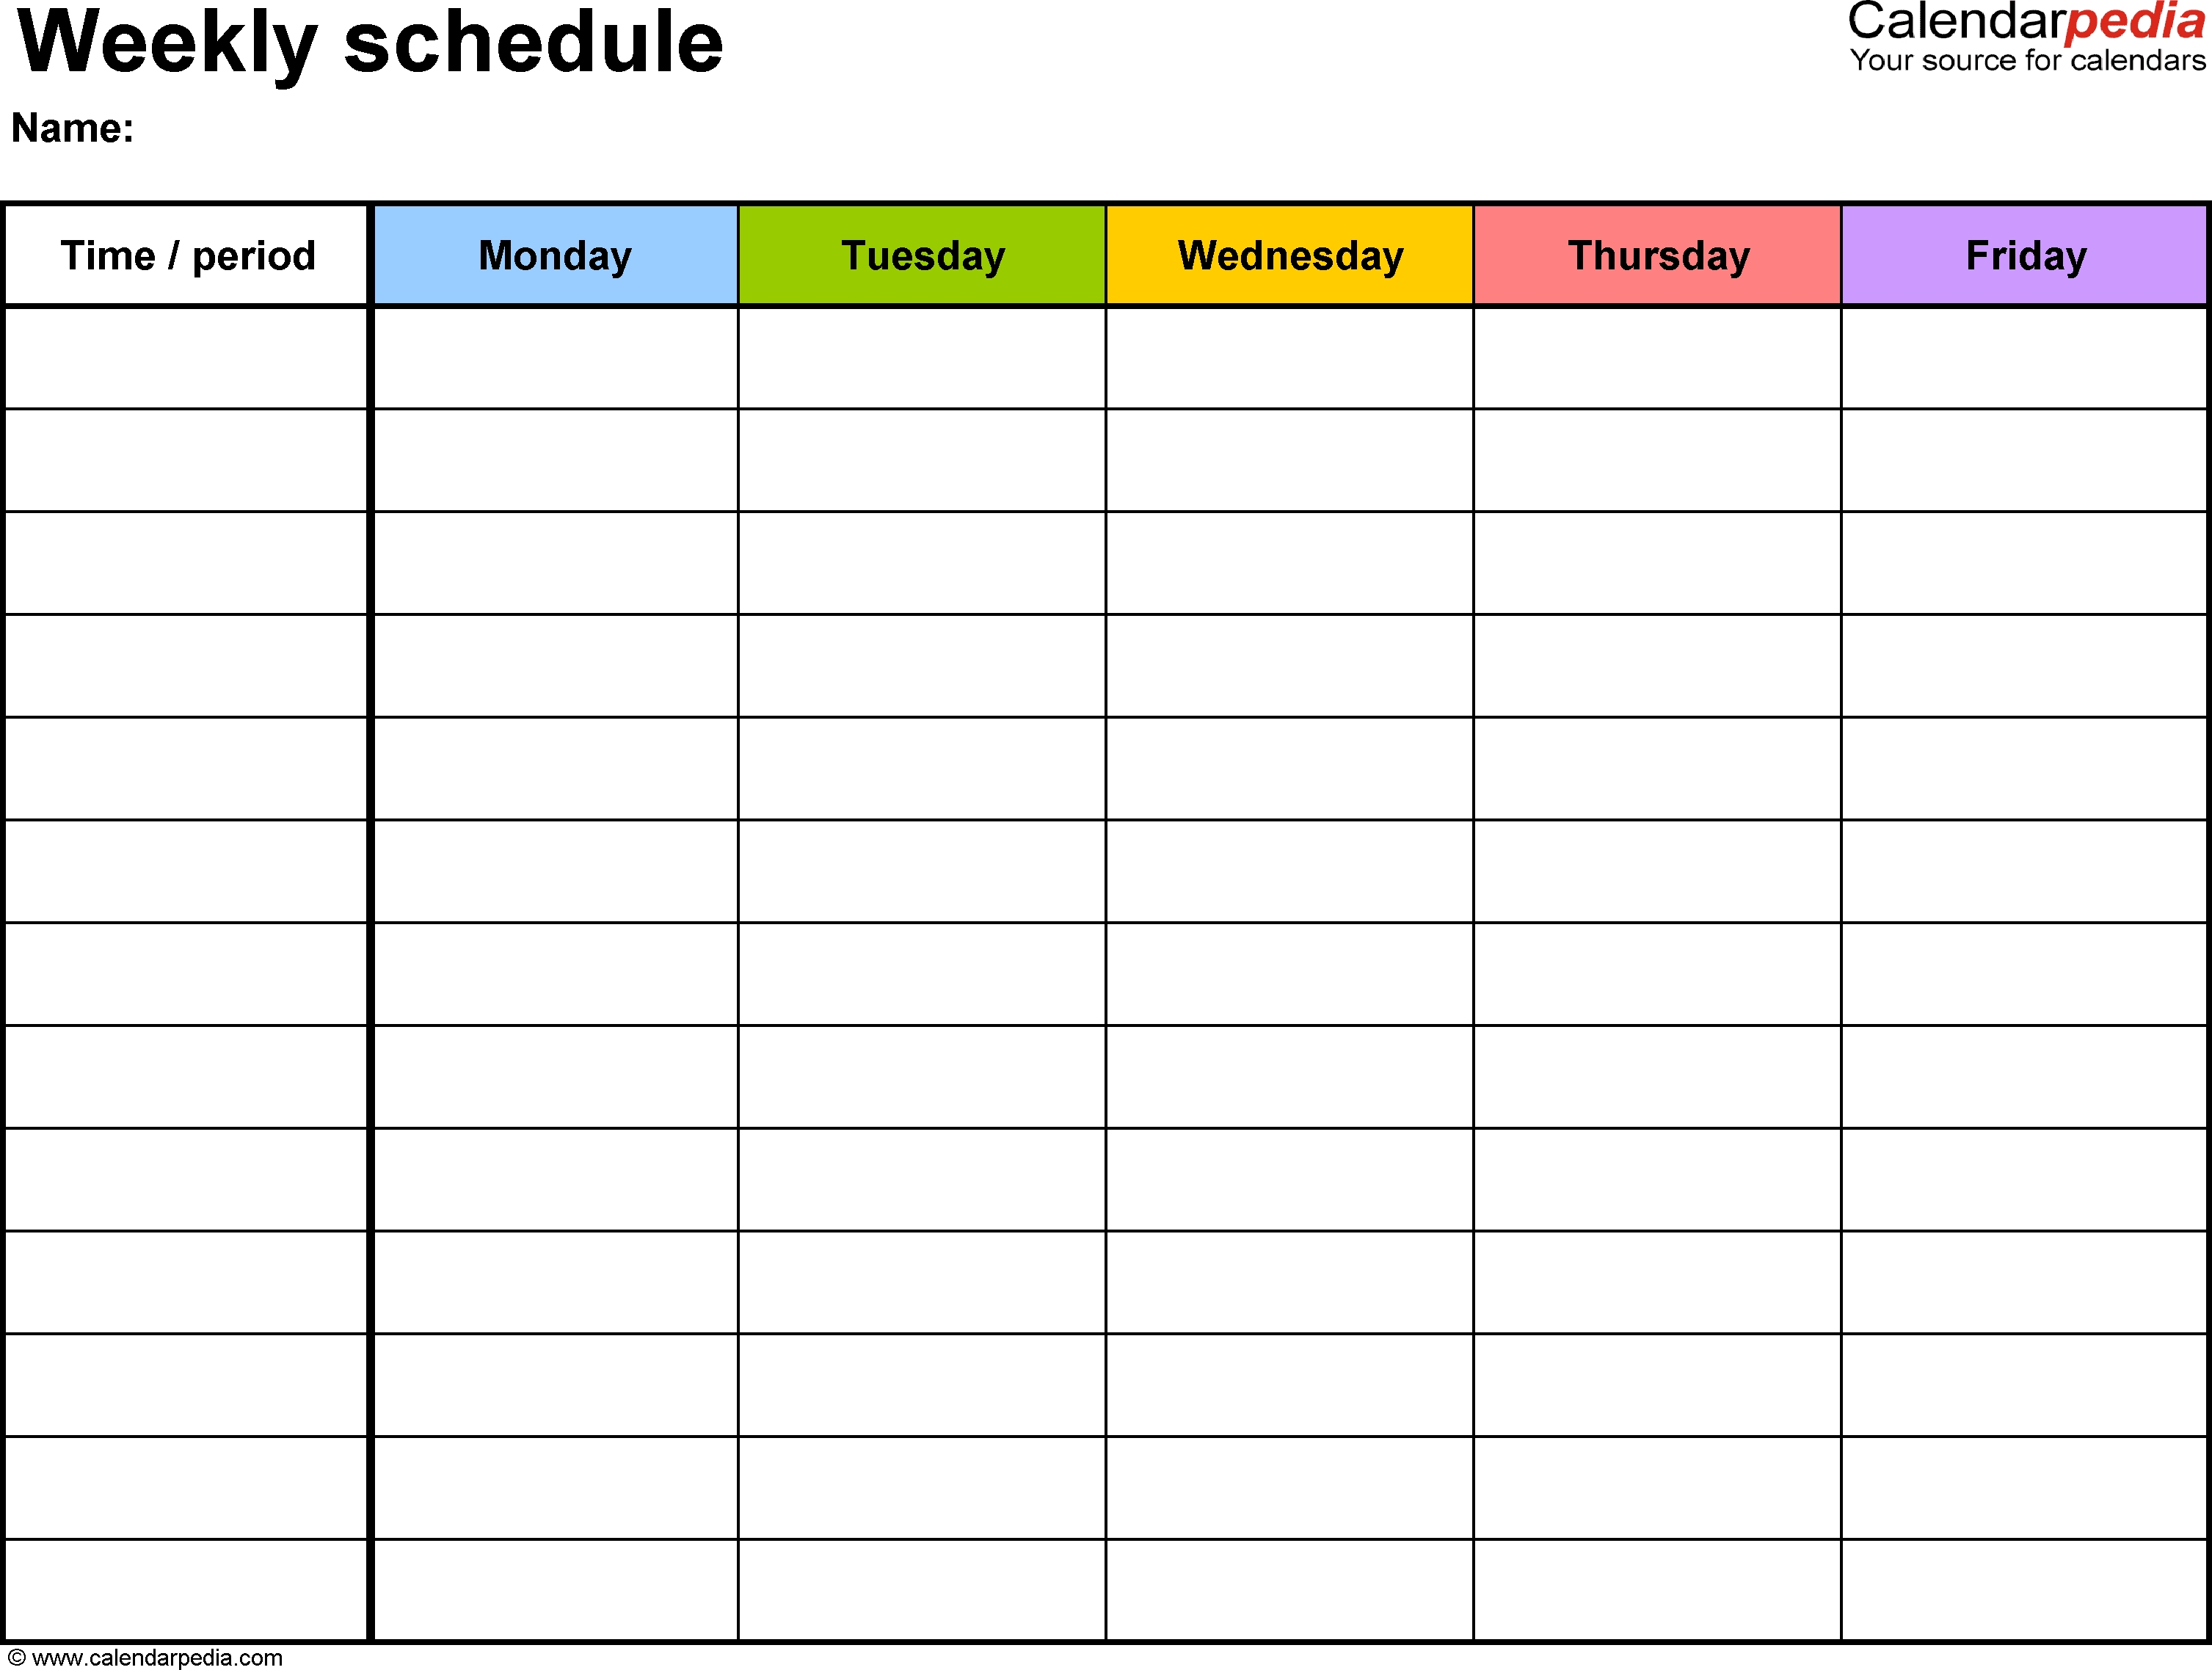 Free Weekly Schedule Templates For Word - 18 Templates intended for Monday Thru Friday Calendar Printable